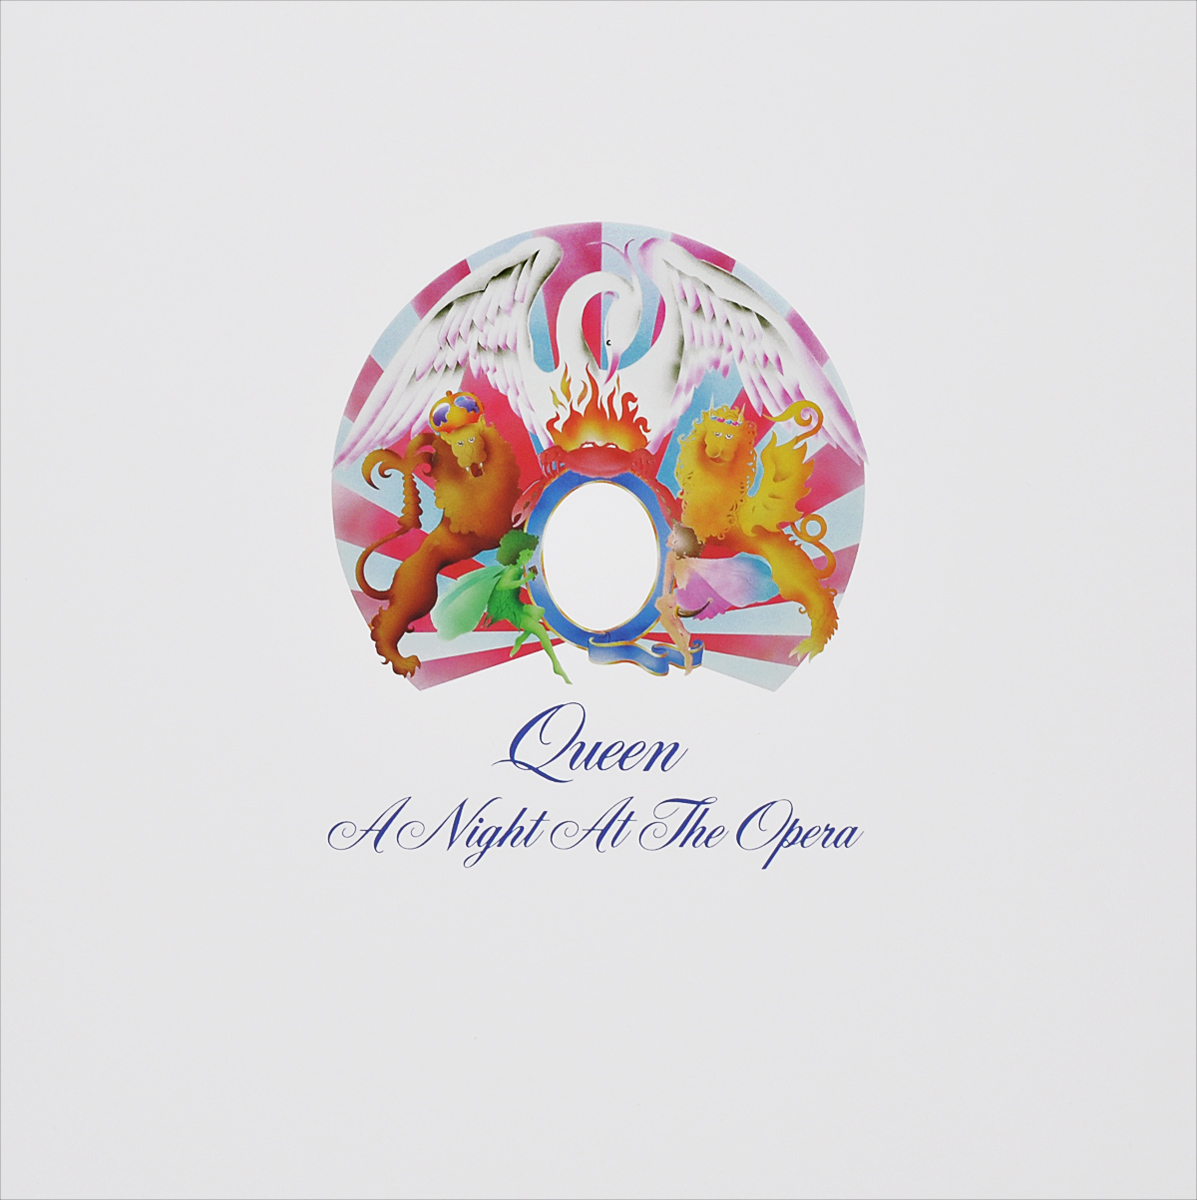 Queen Queen. A Night At The Opera (LP)